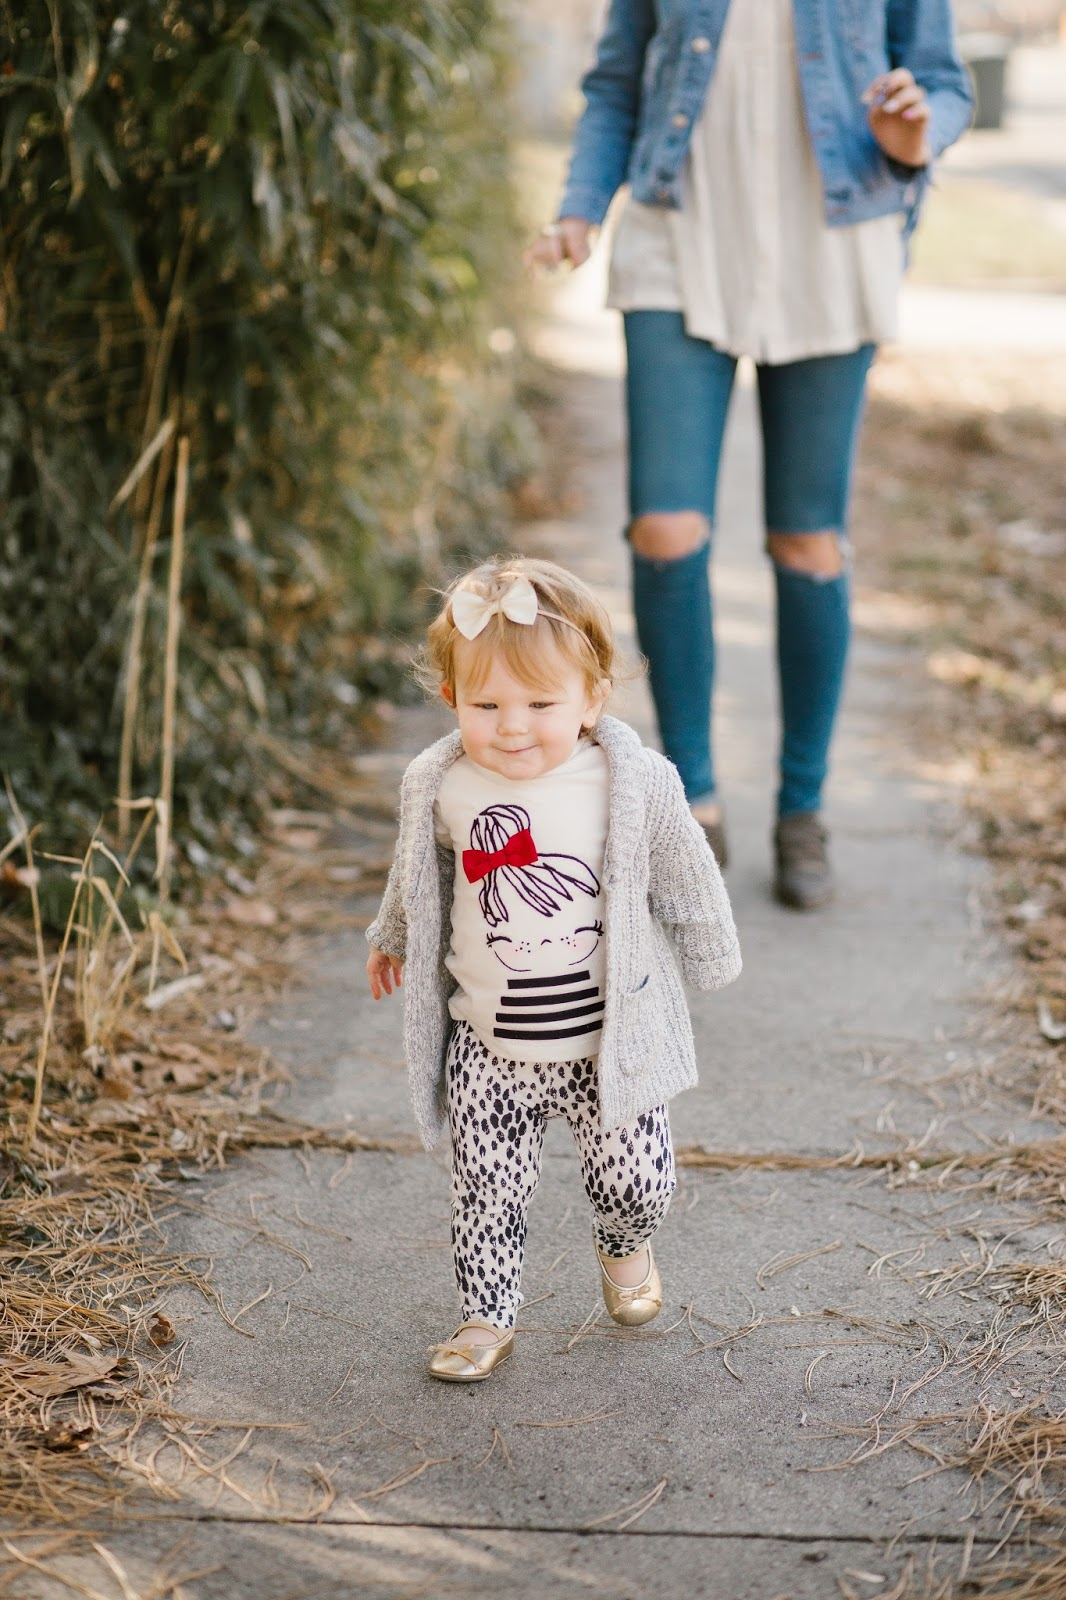 Cute baby, Baby outfit, baby style